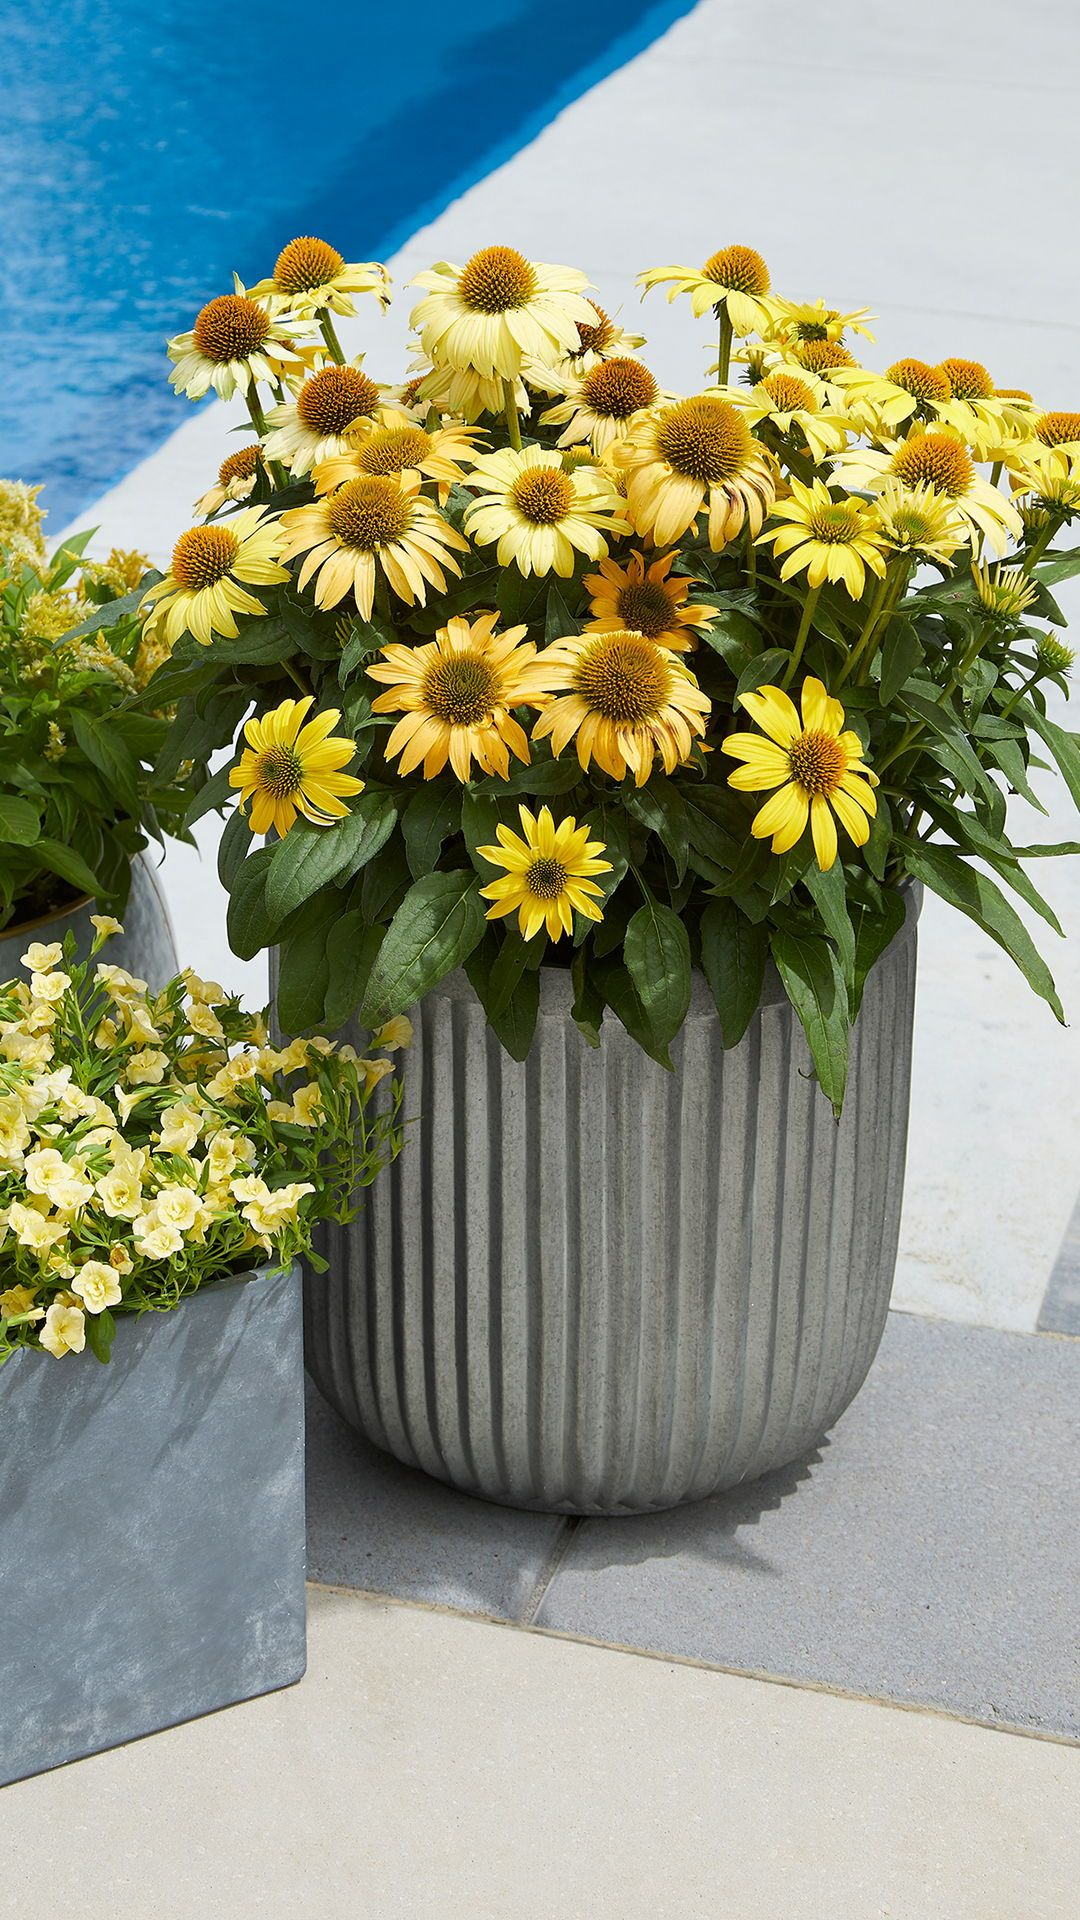 Better Homes Gardens Ellan Faux Galvanized Plastic Planter 12 Walmart Com In 2020 Flower Pots Sunflower Home Decor Plastic Planter